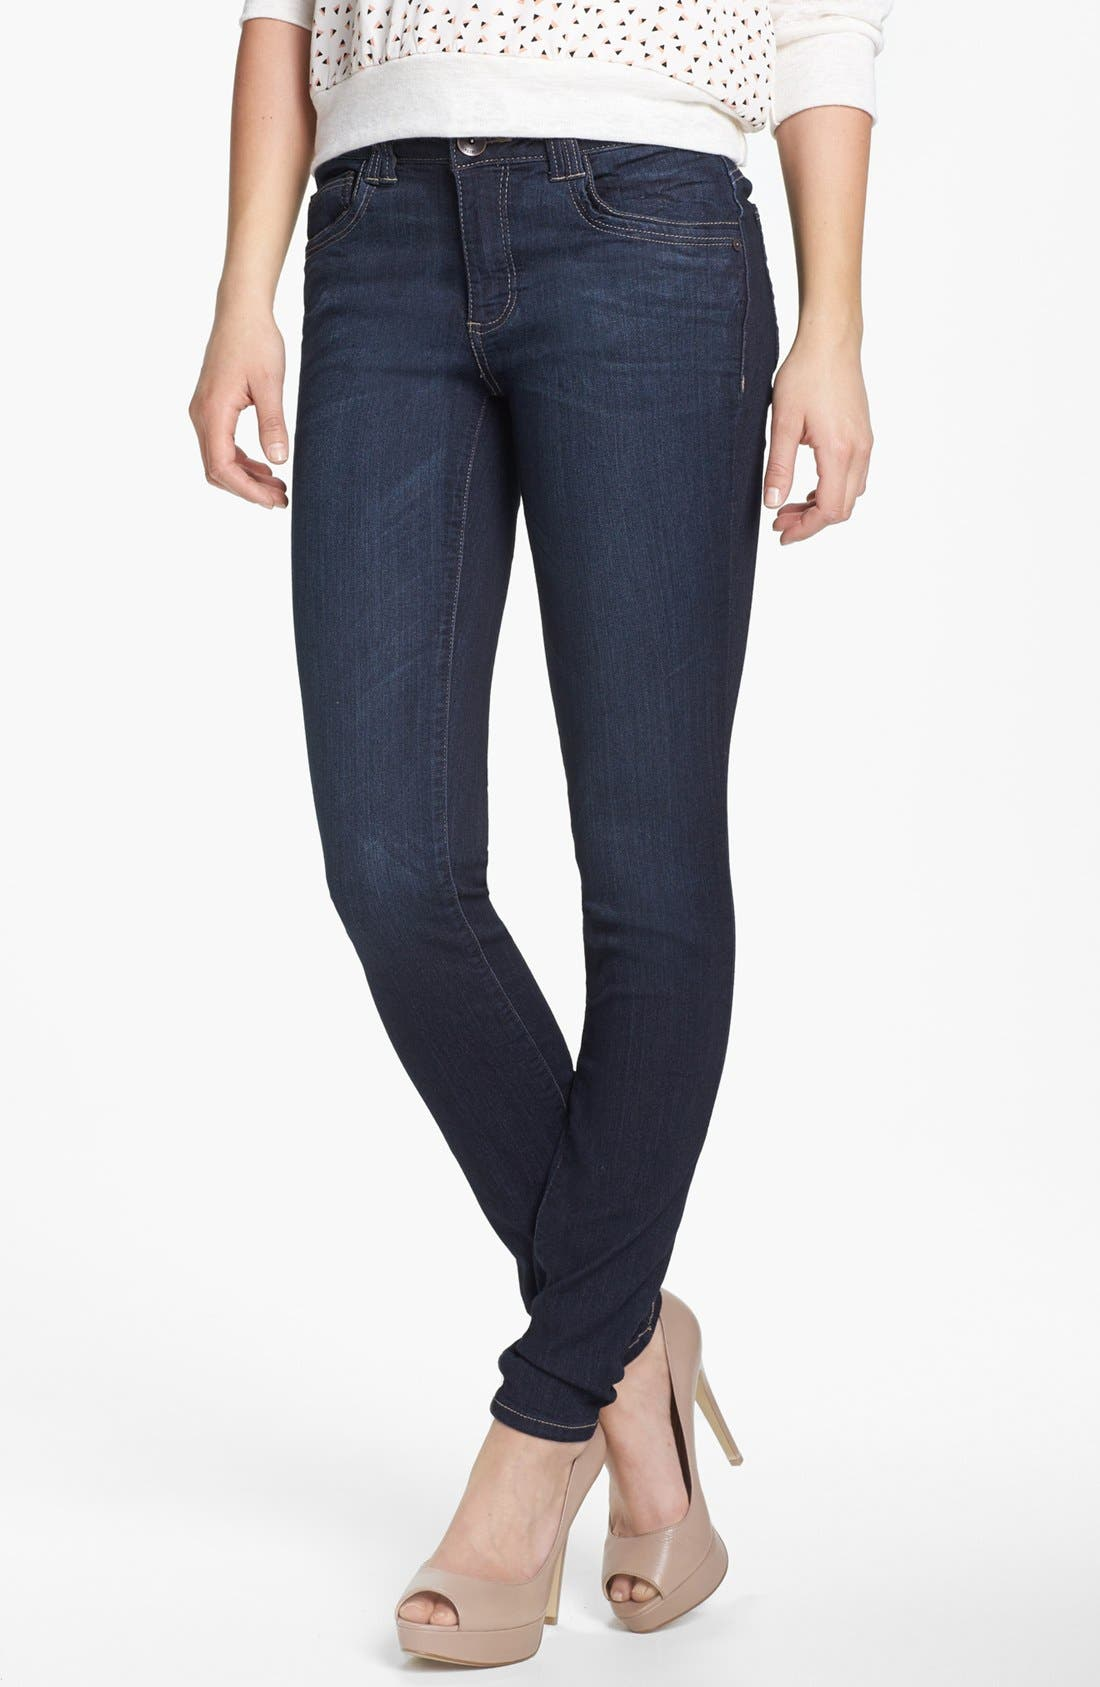 Alternate Image 1 Selected - Wit & Wisdom Skinny Jeans (Indigo) (Nordstrom Exclusive)